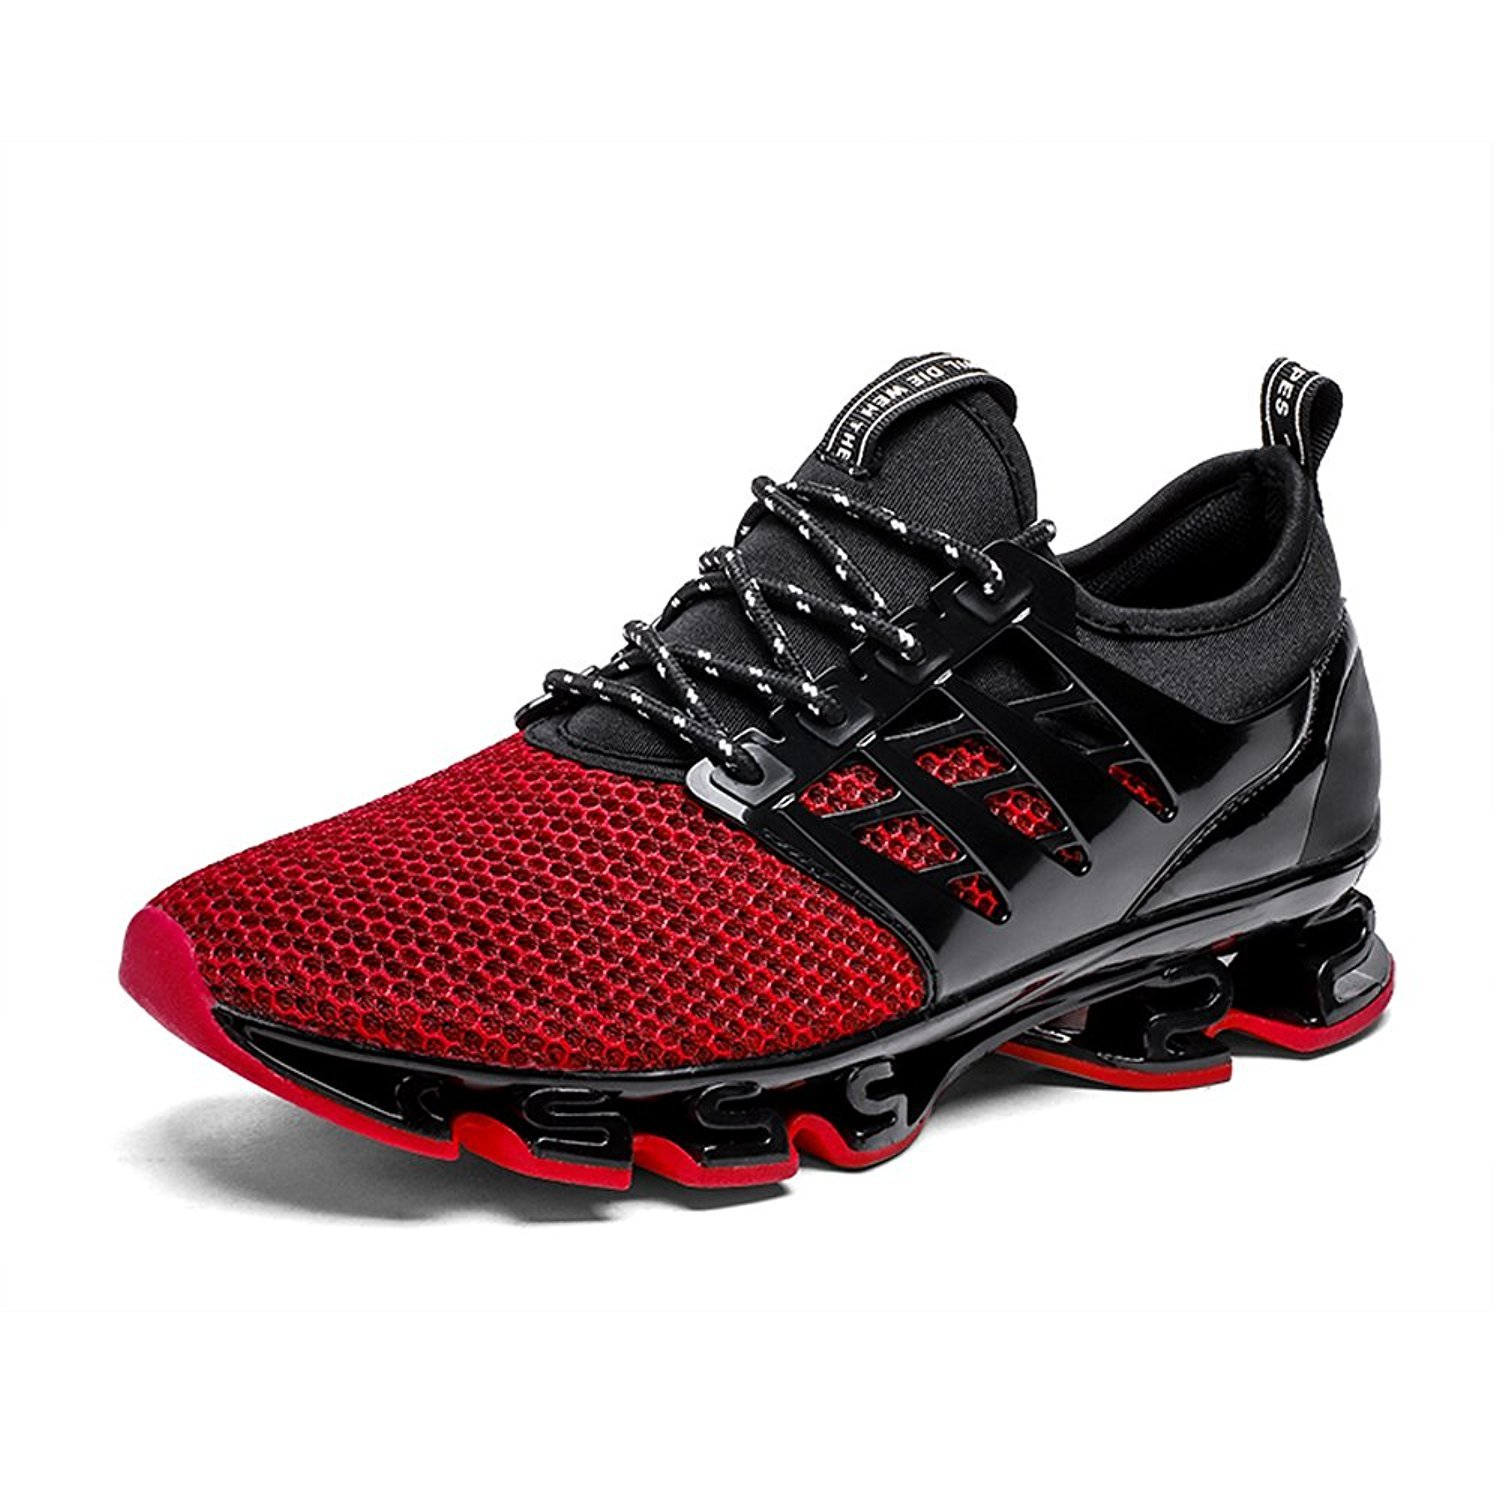 Runwalker Springblade Outdoor Running Sports Shoes for Mens Mesh Breathable Tank Casual Sneakers B07D3MGY9Q 7.5 D(M) US Red